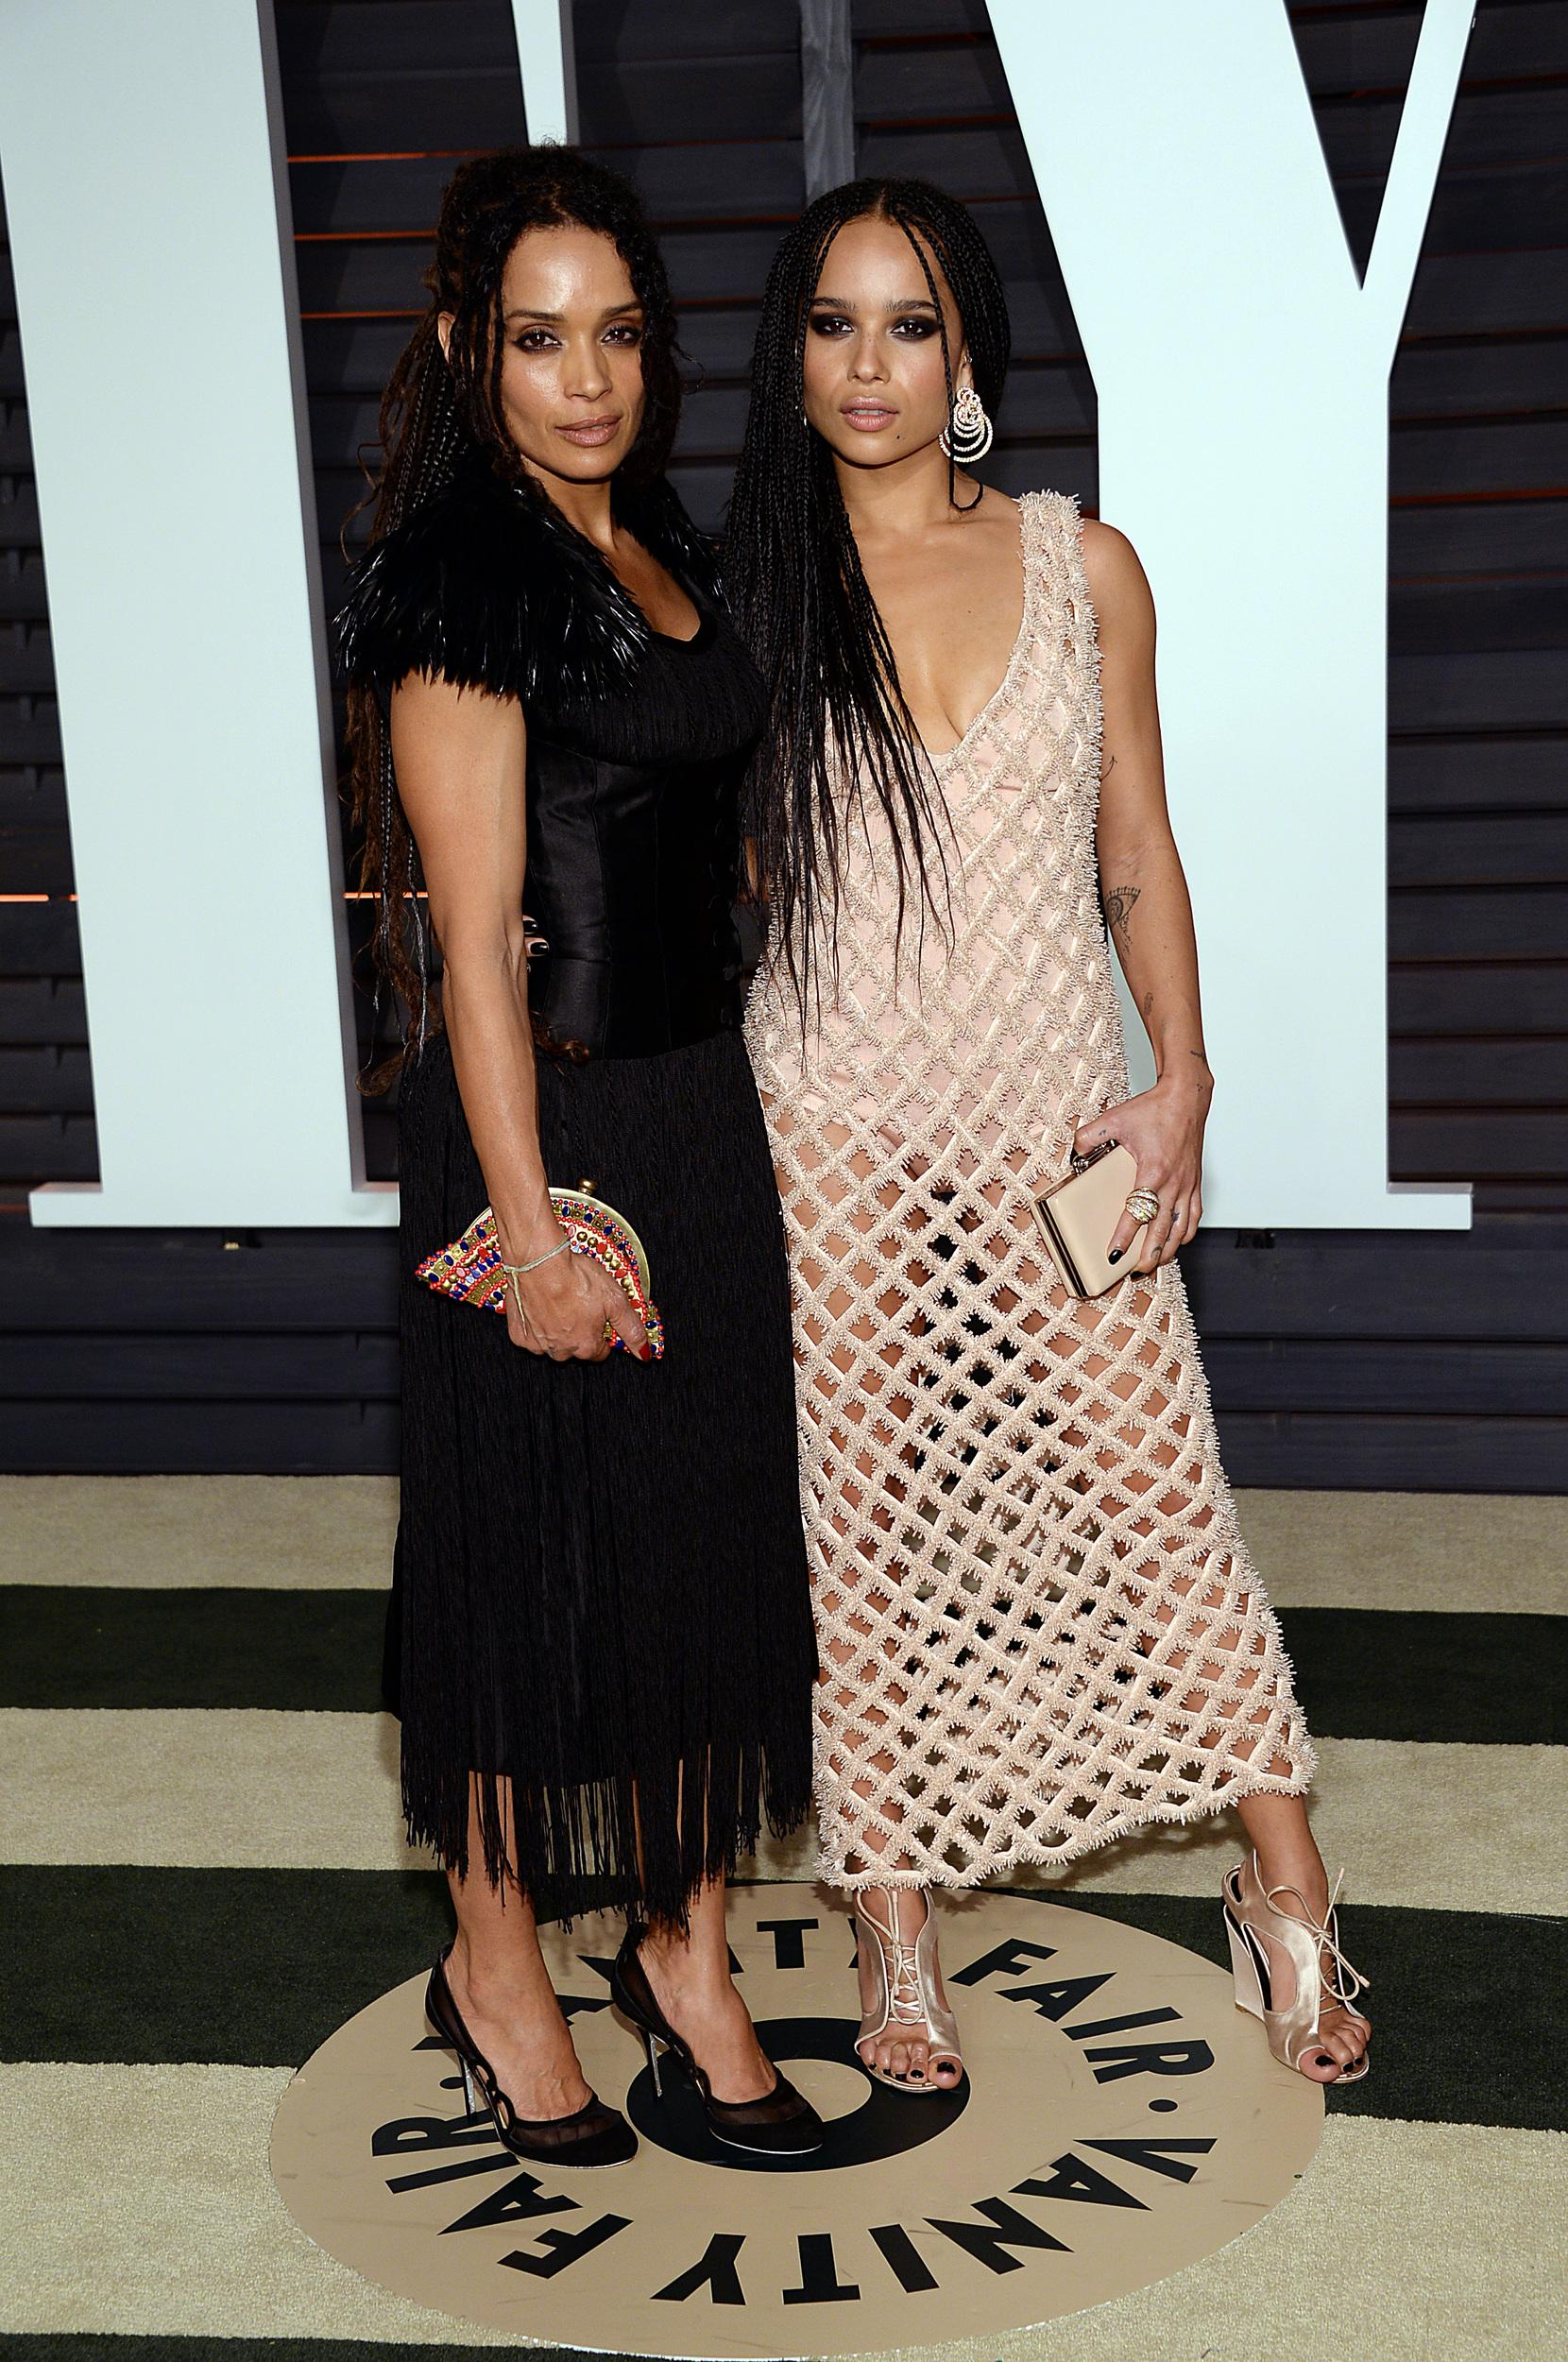 Lisa Bonet, left, and Zoe Kravitz arrive at the 2015 Vanity Fair Oscar Party on Sunday, Feb. 22, 2015, in Beverly Hills, Calif. (Photo by Evan Agostini/Invision/AP)